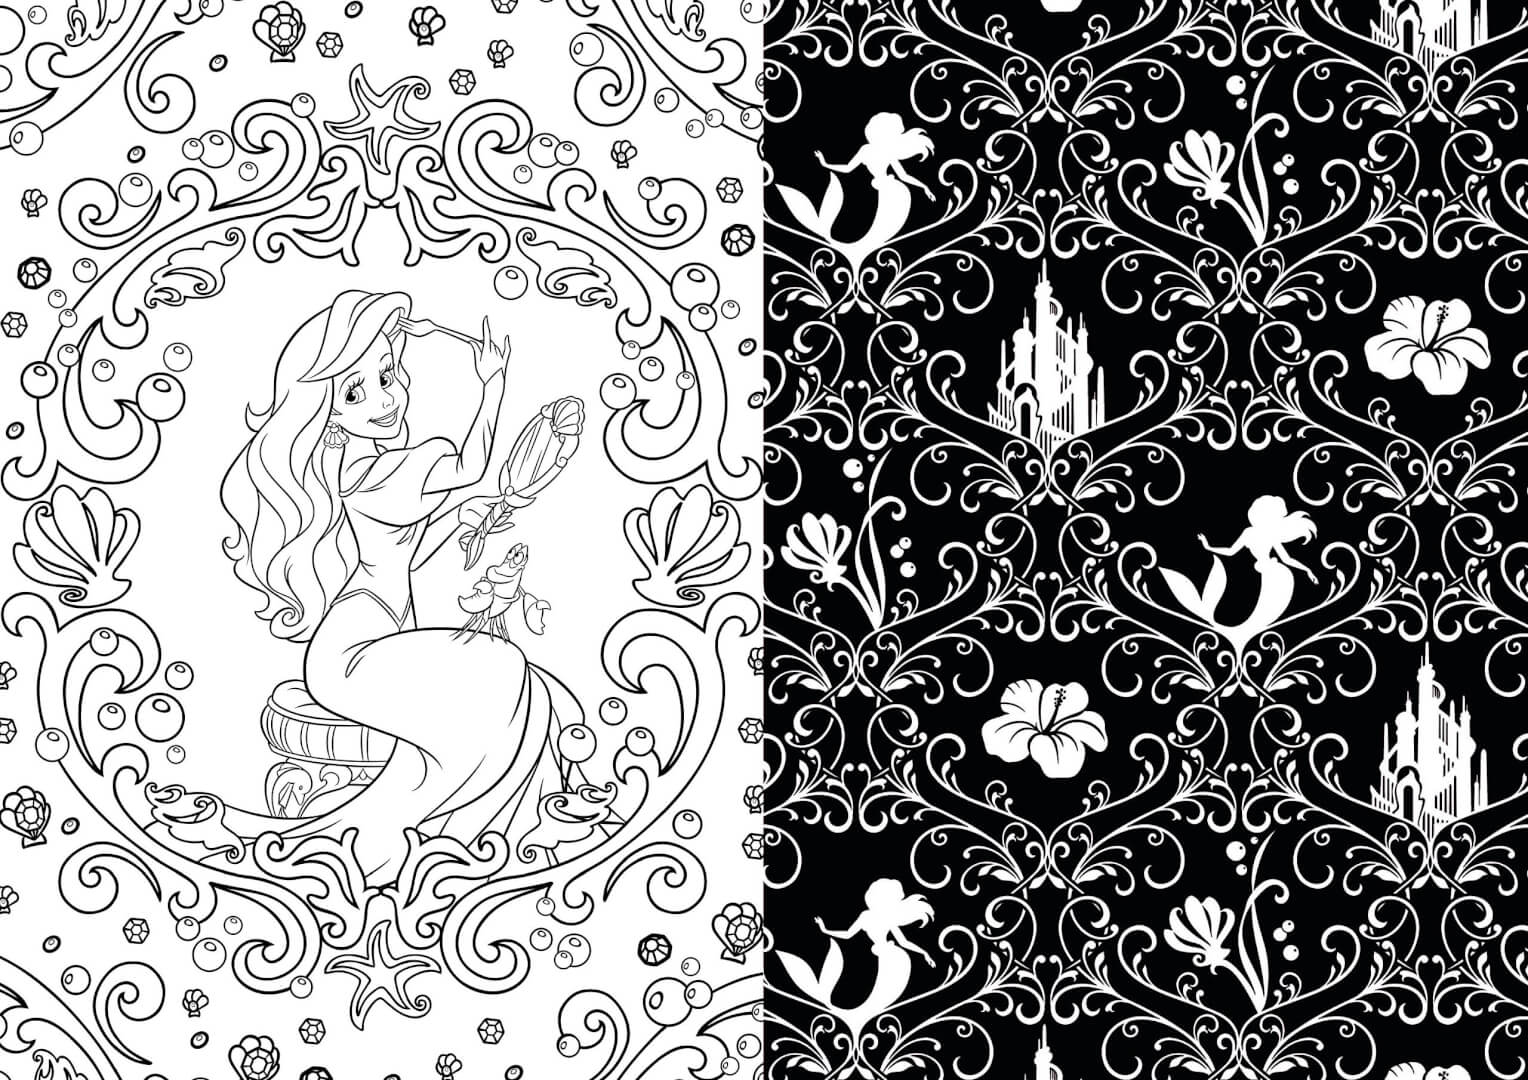 Enjoy Some Art Therapy With Disney Coloring Books For Adults